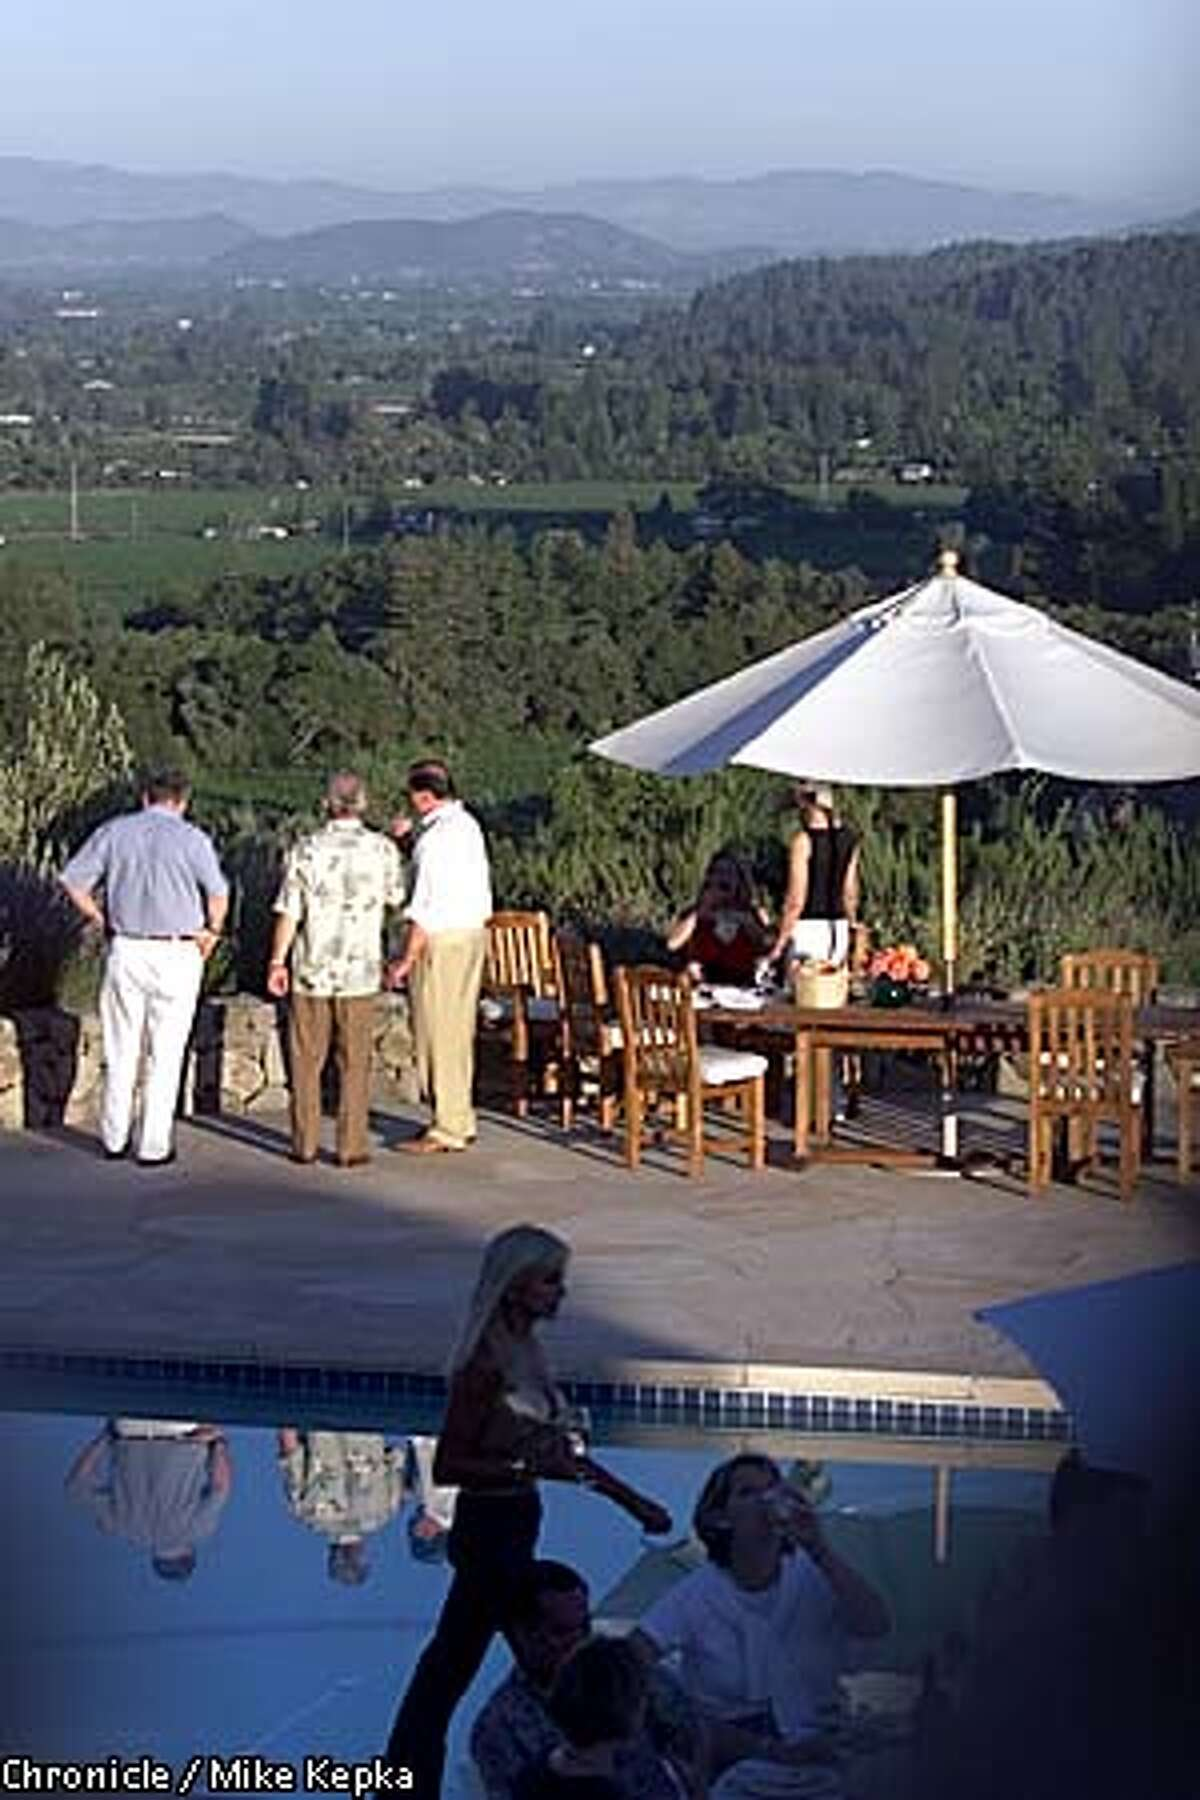 Party guests at Lord and Lady Butler's St. Helena estate drink in the views of Napa Valley from the back patio. Chronicle photo by Mike Kepka